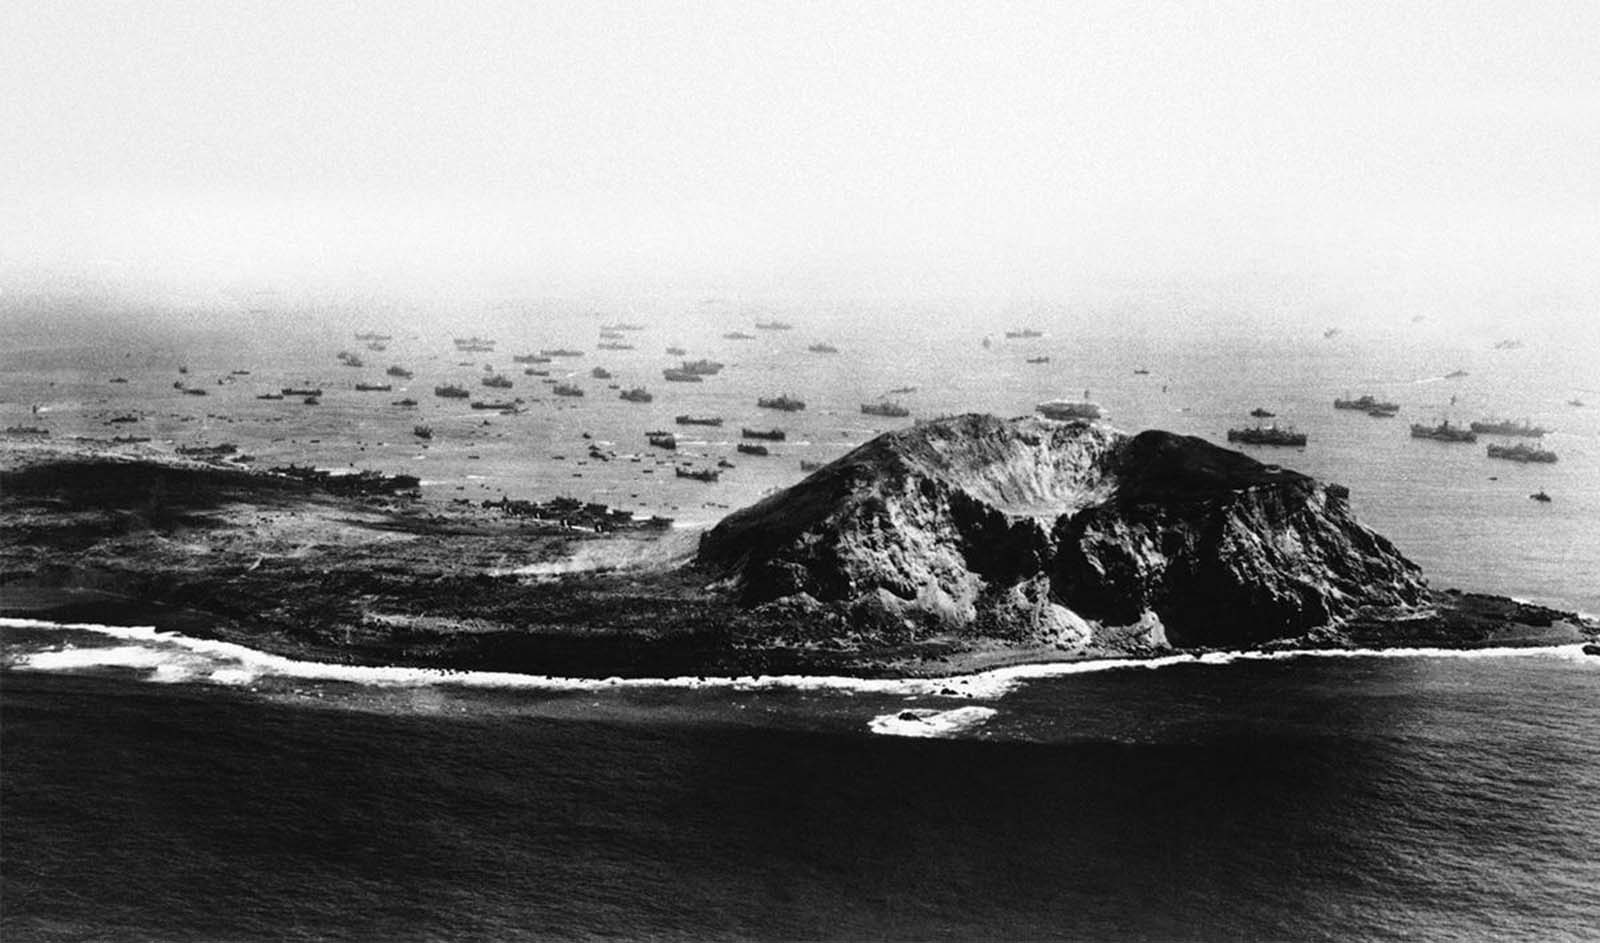 This aerial photograph made on day five of the invasion shows the immense power needed to break the back of Japanese Resistance on Iwo Jima, on March 17, 1945. Just off the beach, landing craft await their chance at the unloading area while small boats from the transports ply back and forth bring assault troops and returning wounded for treatment. Further out, the transports themselves faintly along the horizon, the protective screen of destroyers, destroyer escorts and cruisers can be seen. On the island, Marine tanks can be spotted moving through the rough terrain toward the first airfield at left.